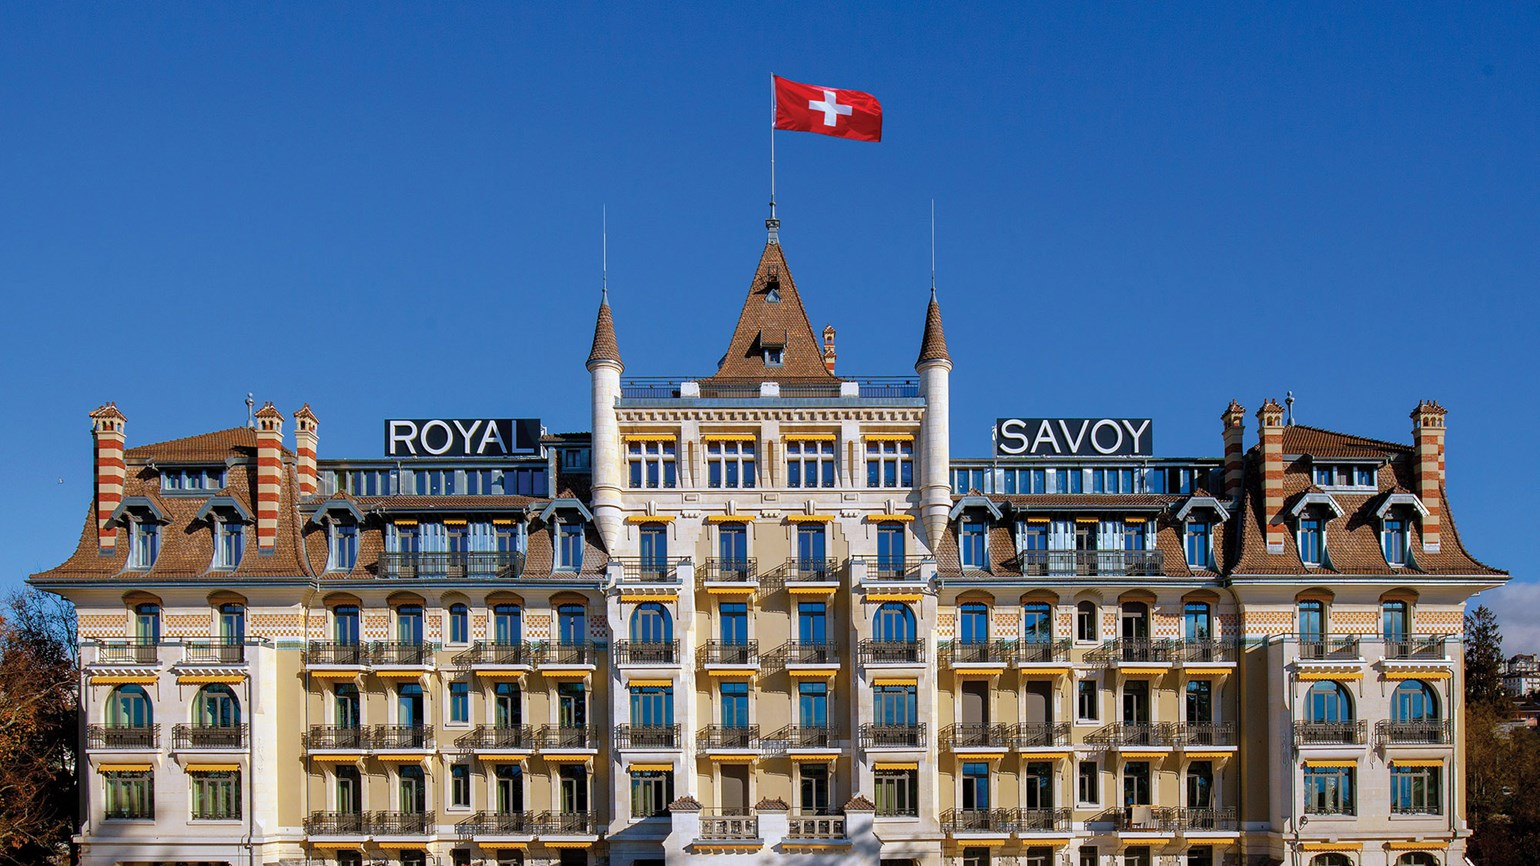 Swiss bliss at the rejuvenated Royal Savoy